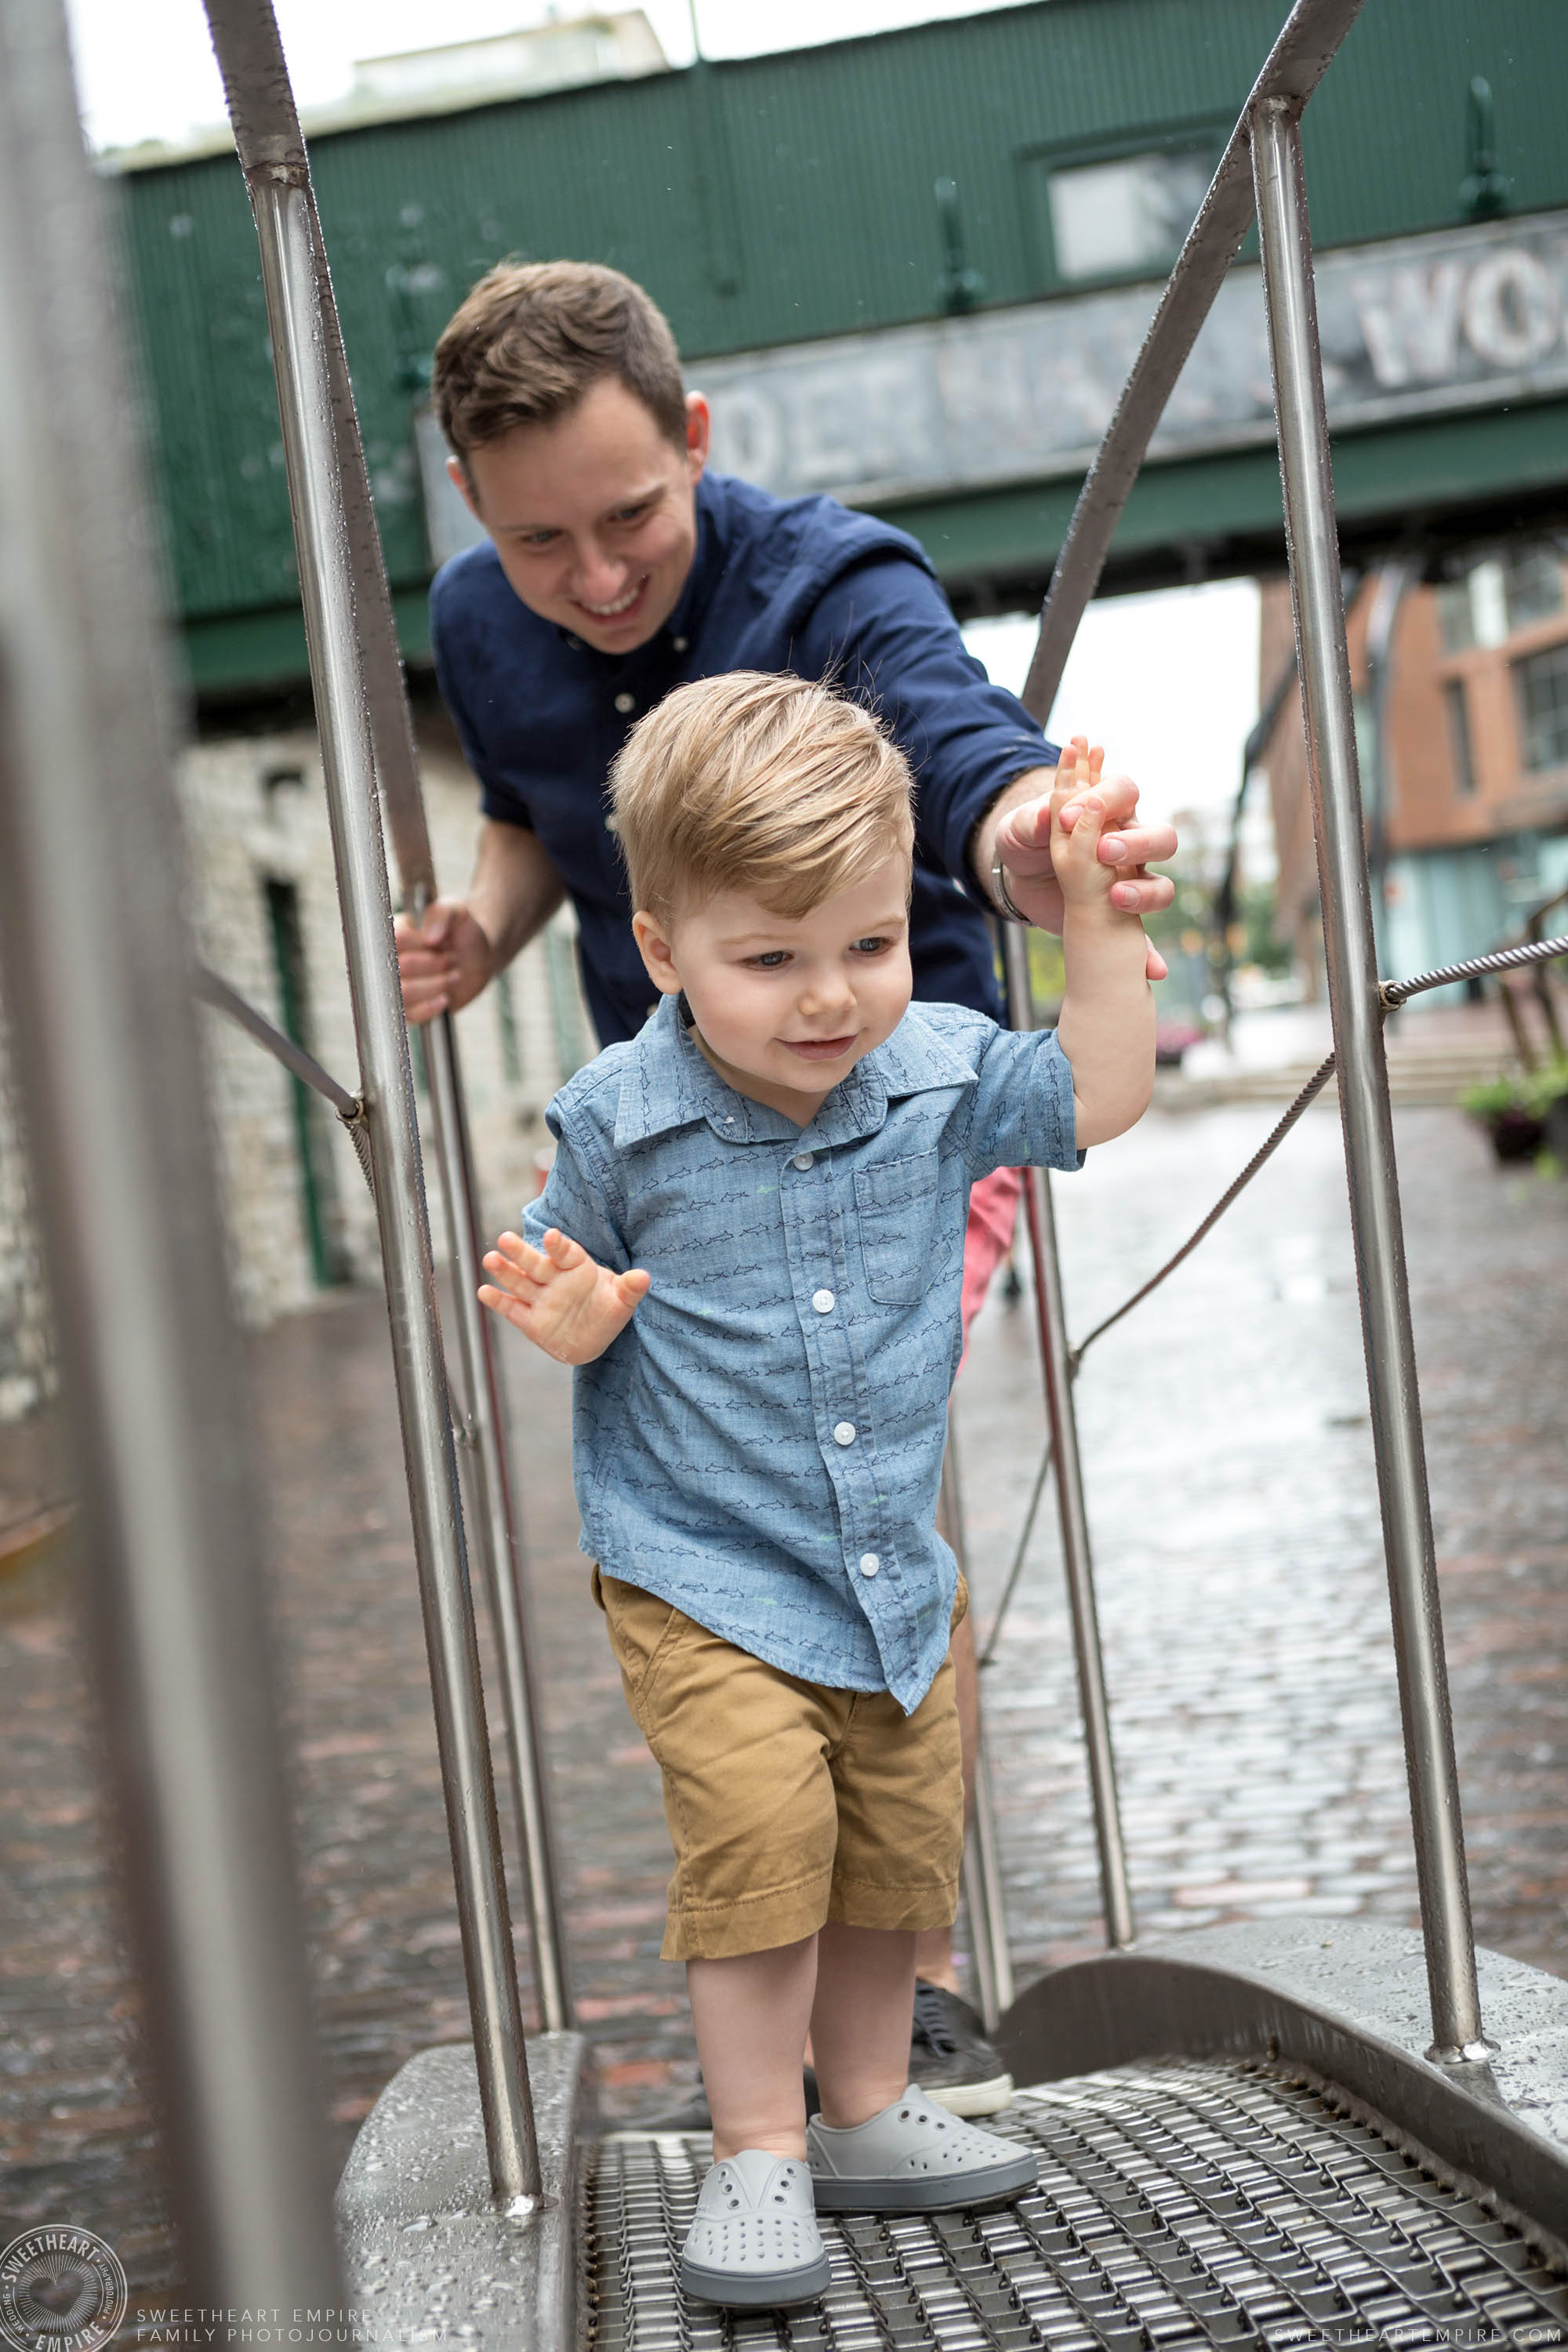 03_Toddler and father climbing sculptures in toronto distillery district.jpg